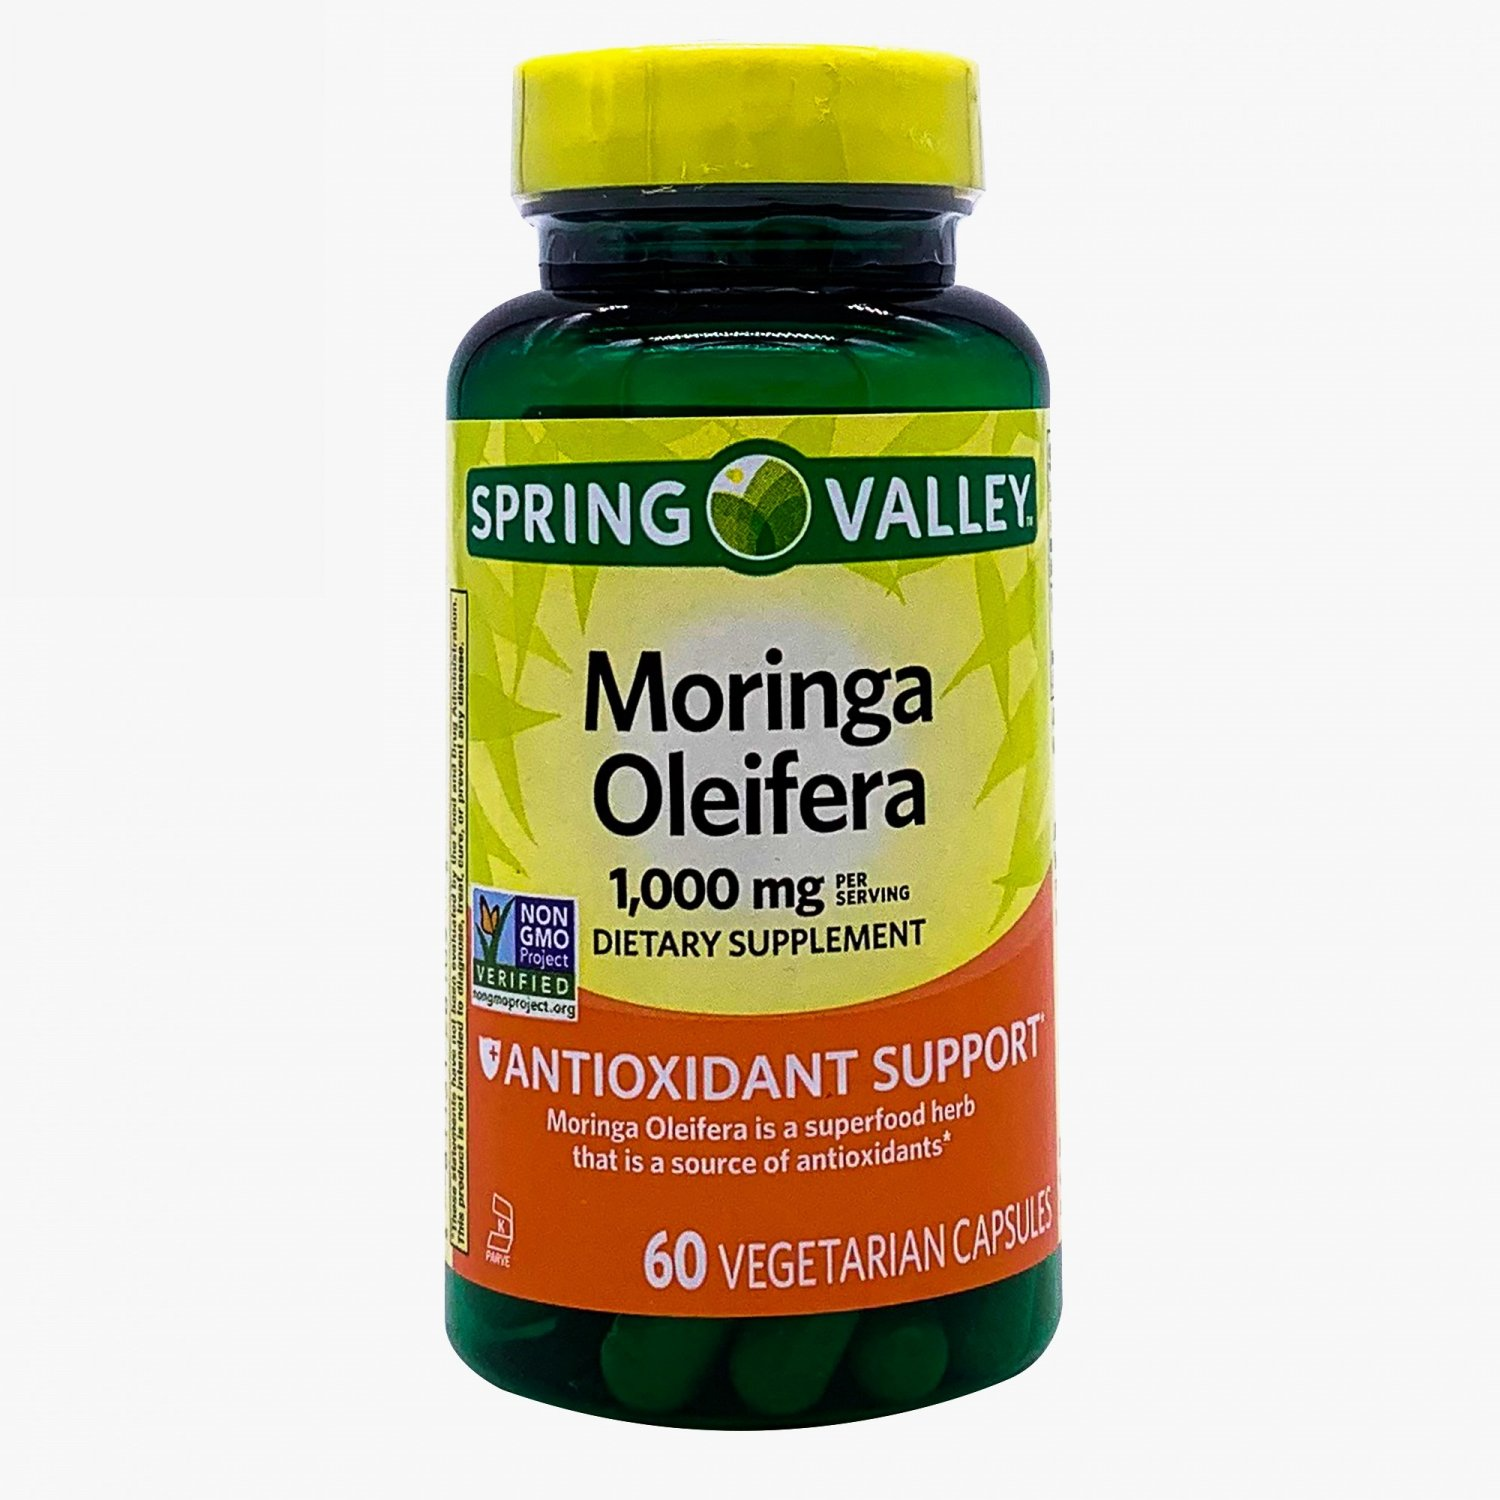 Spring Valley Moringa Oleifera Antioxidant Support 1,000 mg 60 Vegetarian Capsules